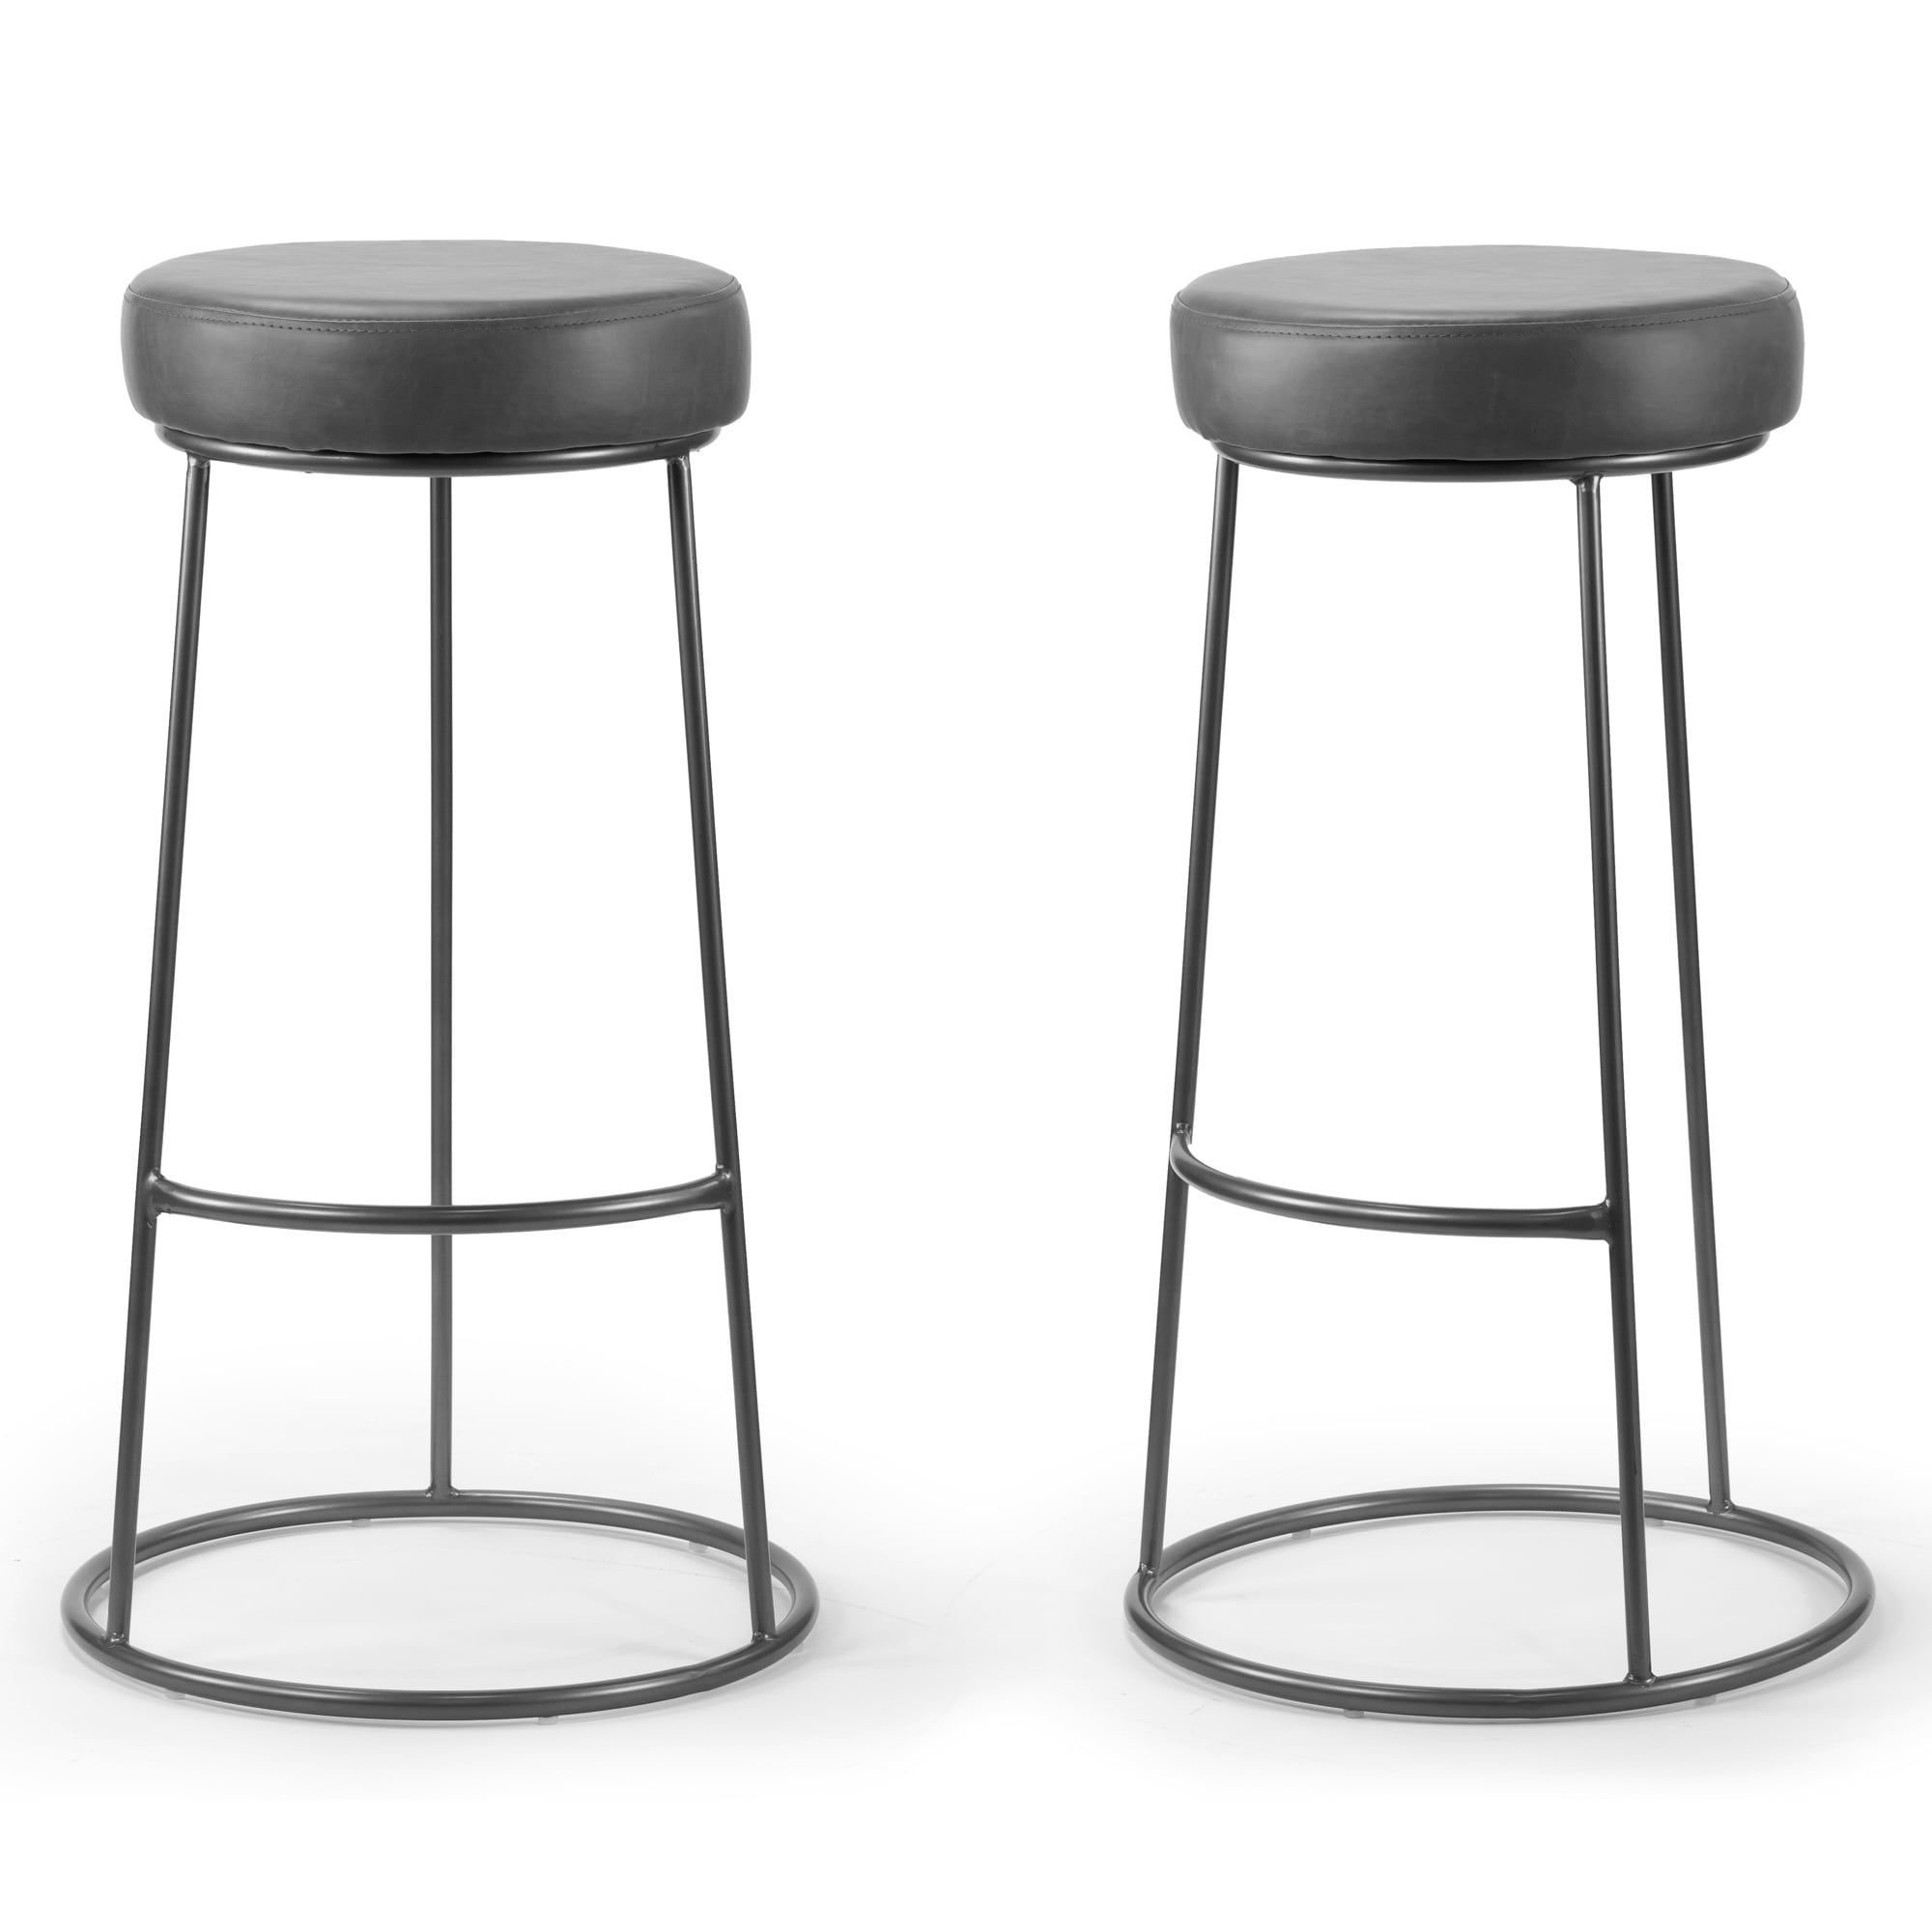 Set Of 2 Amie Grey Backless Bar Stool With Gunmetal Grey Frame Gray Backless Bar Stools Bar Stools Stool